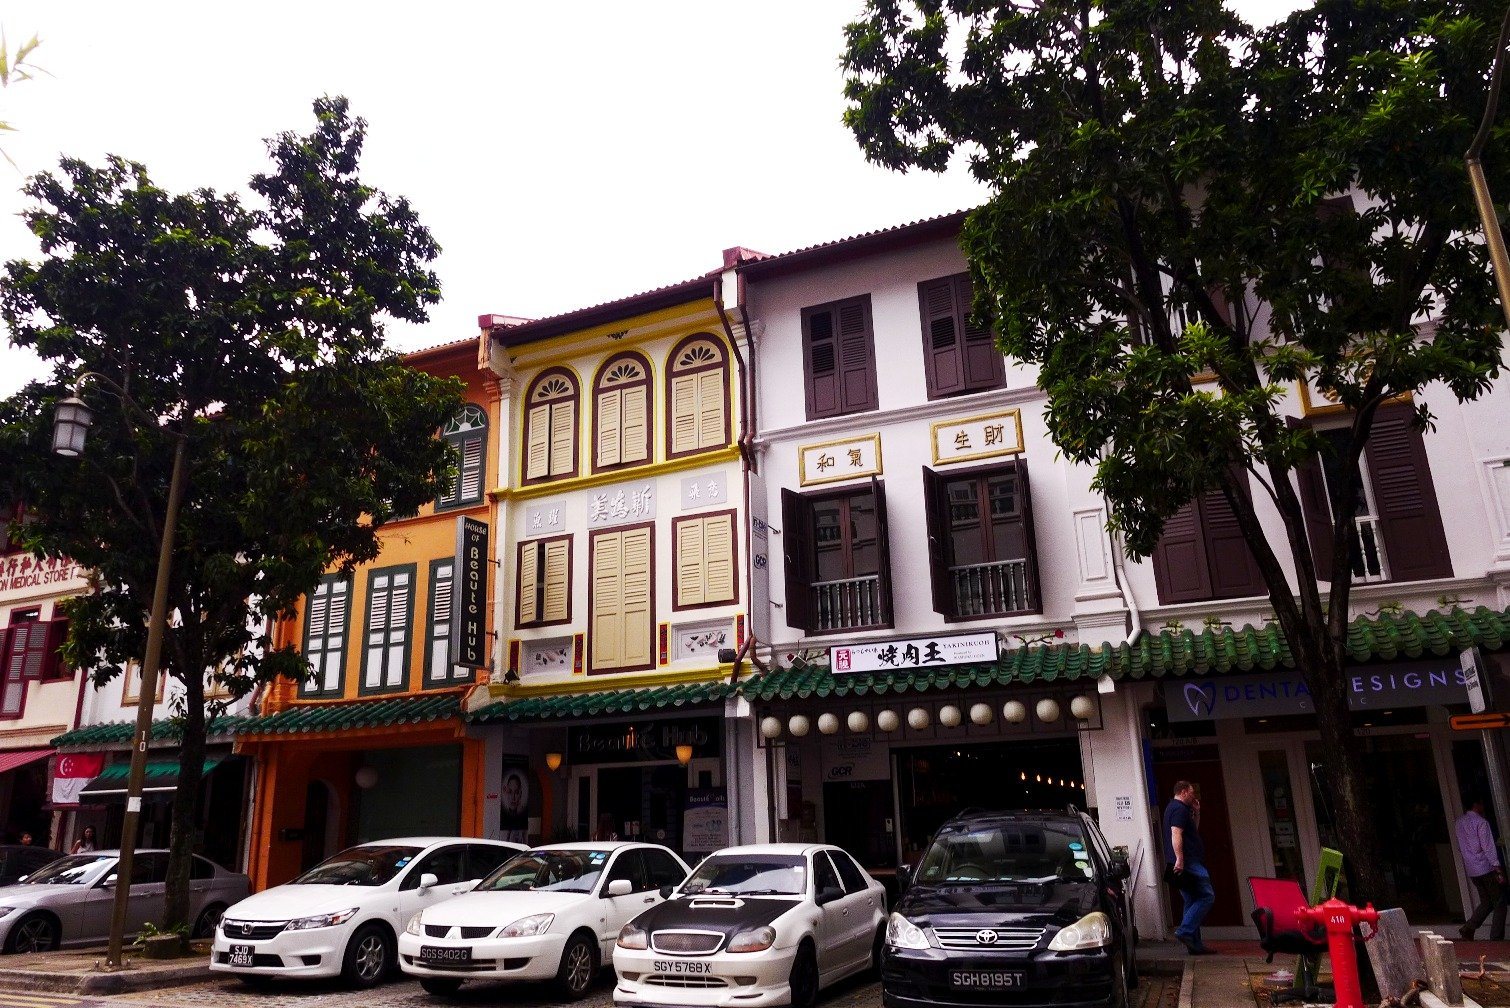 Singapore Chinatown itinerary; D.I.Y. Singapore; Singapore itinerary; Singapore travel; D.I.Y. Singapore Chinatown Walking Tour